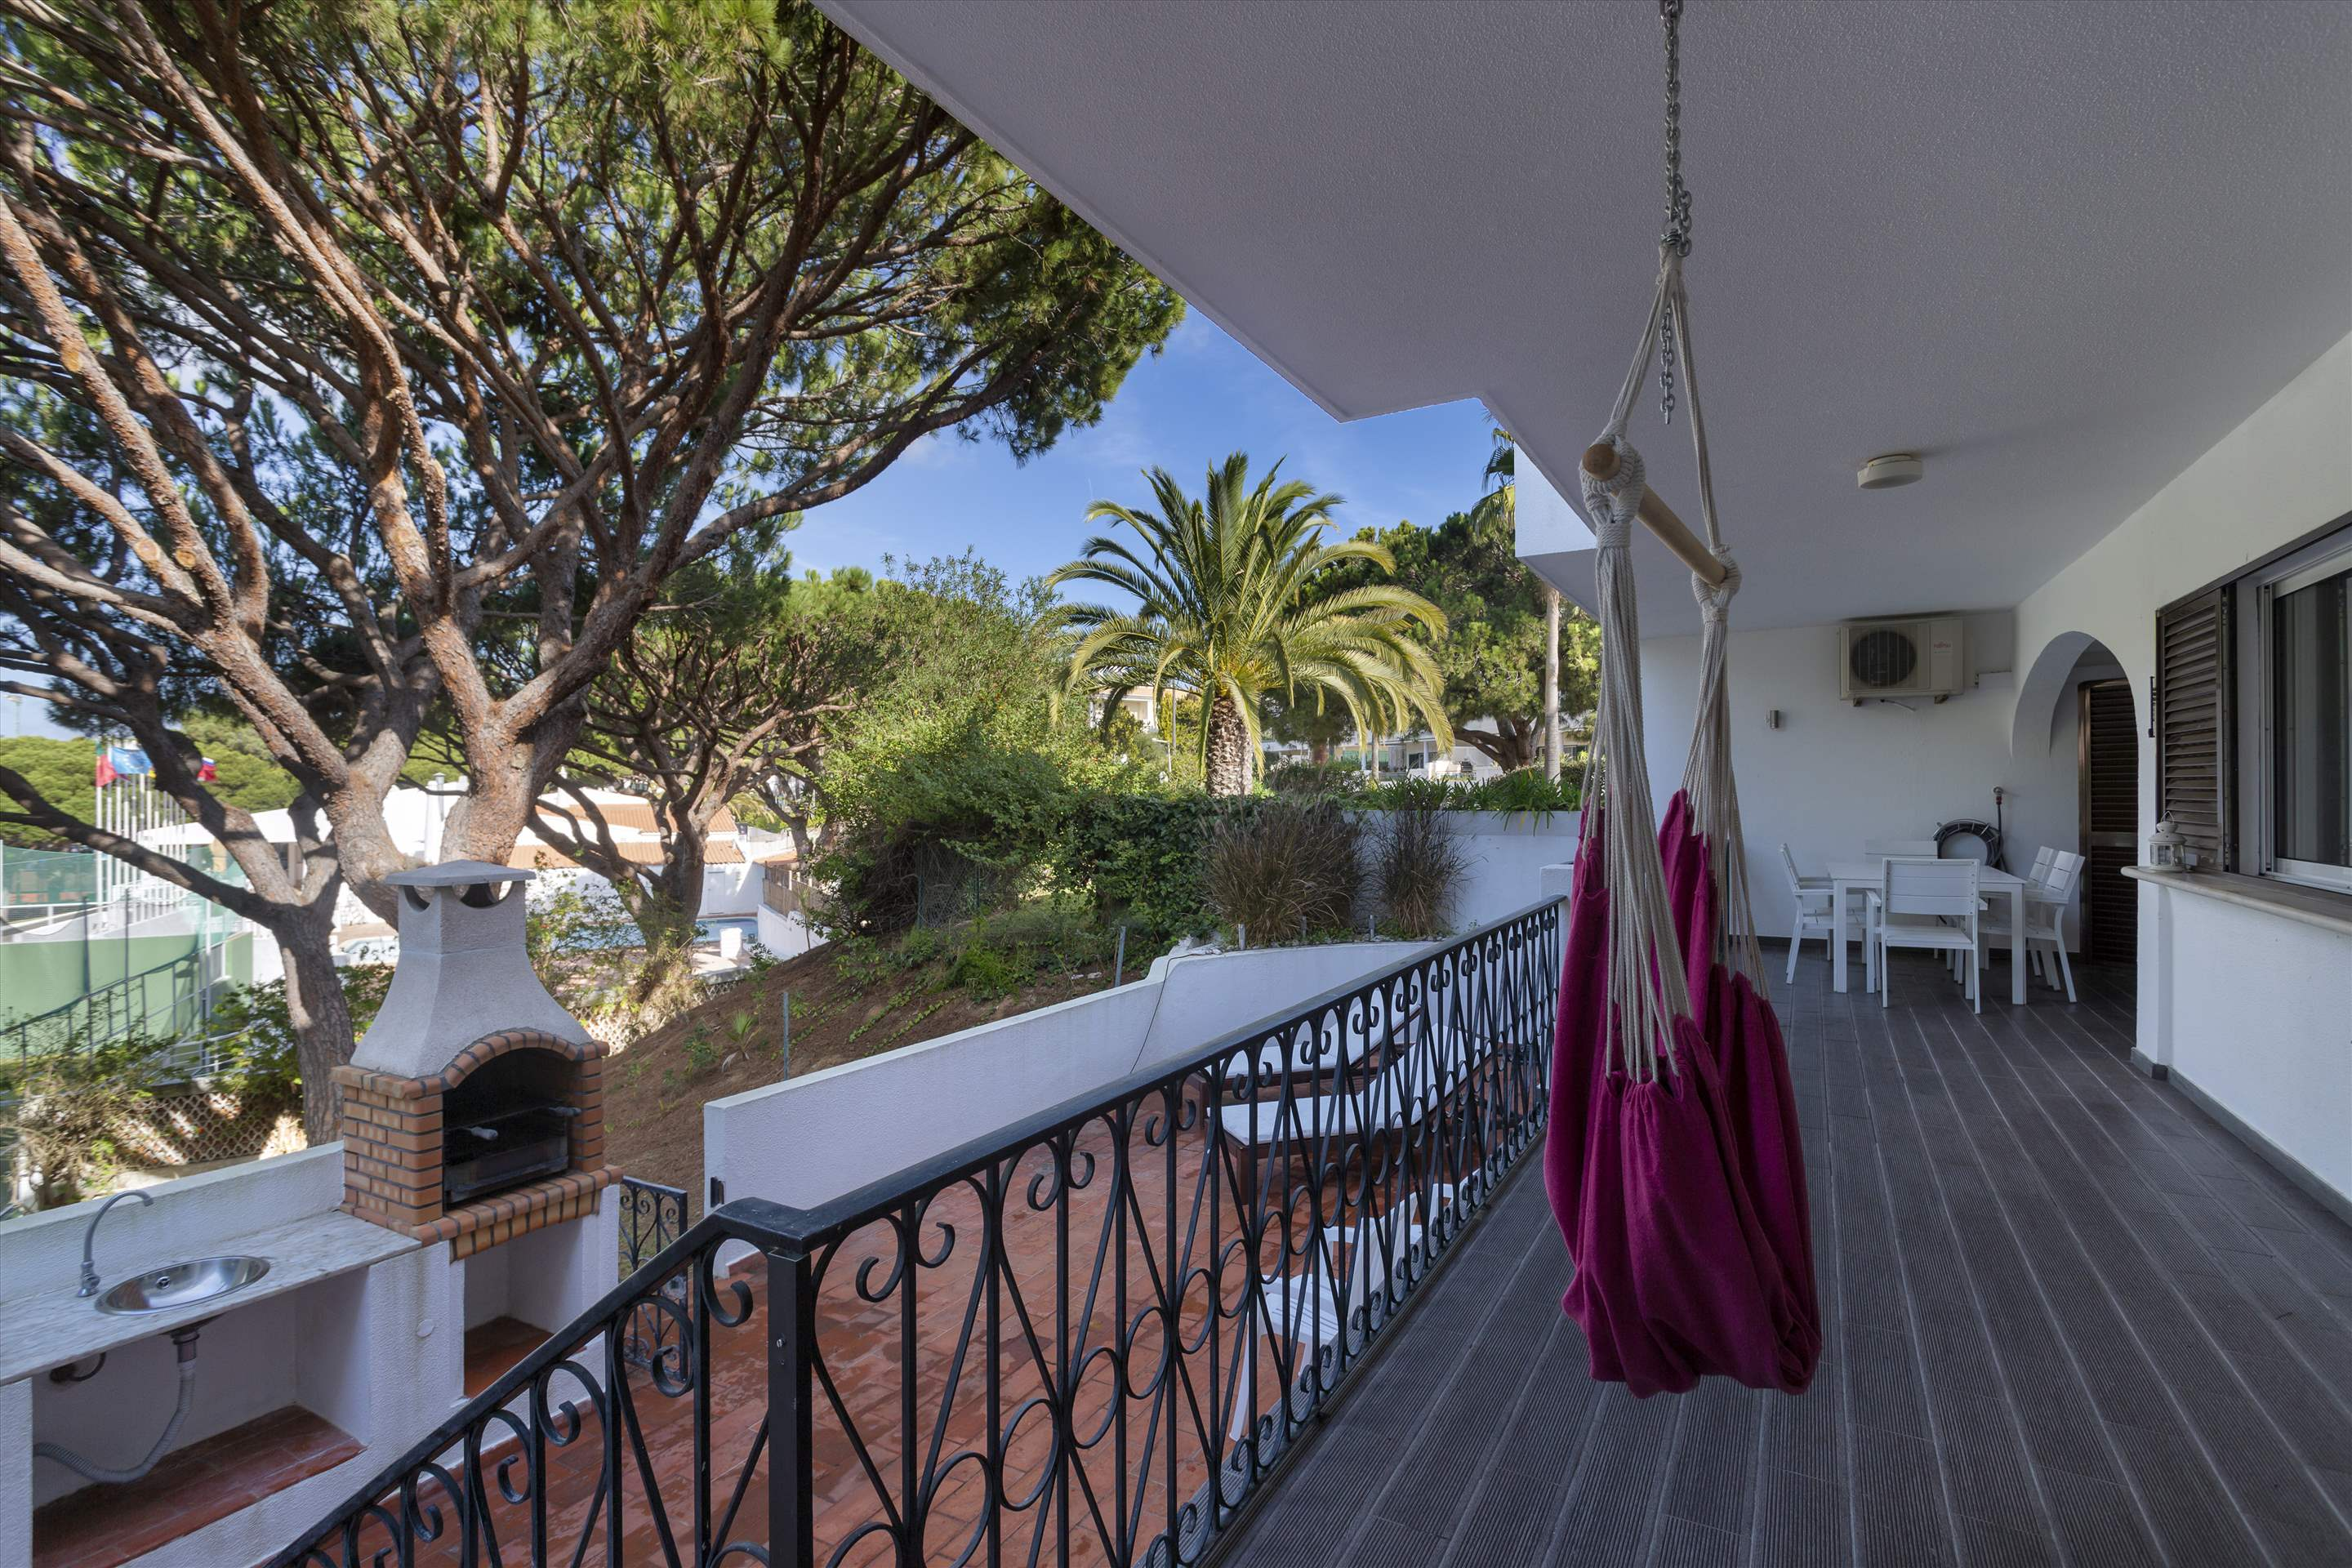 Apartment Academia, 3 bedroom apartment in Vale do Lobo, Algarve Photo #4